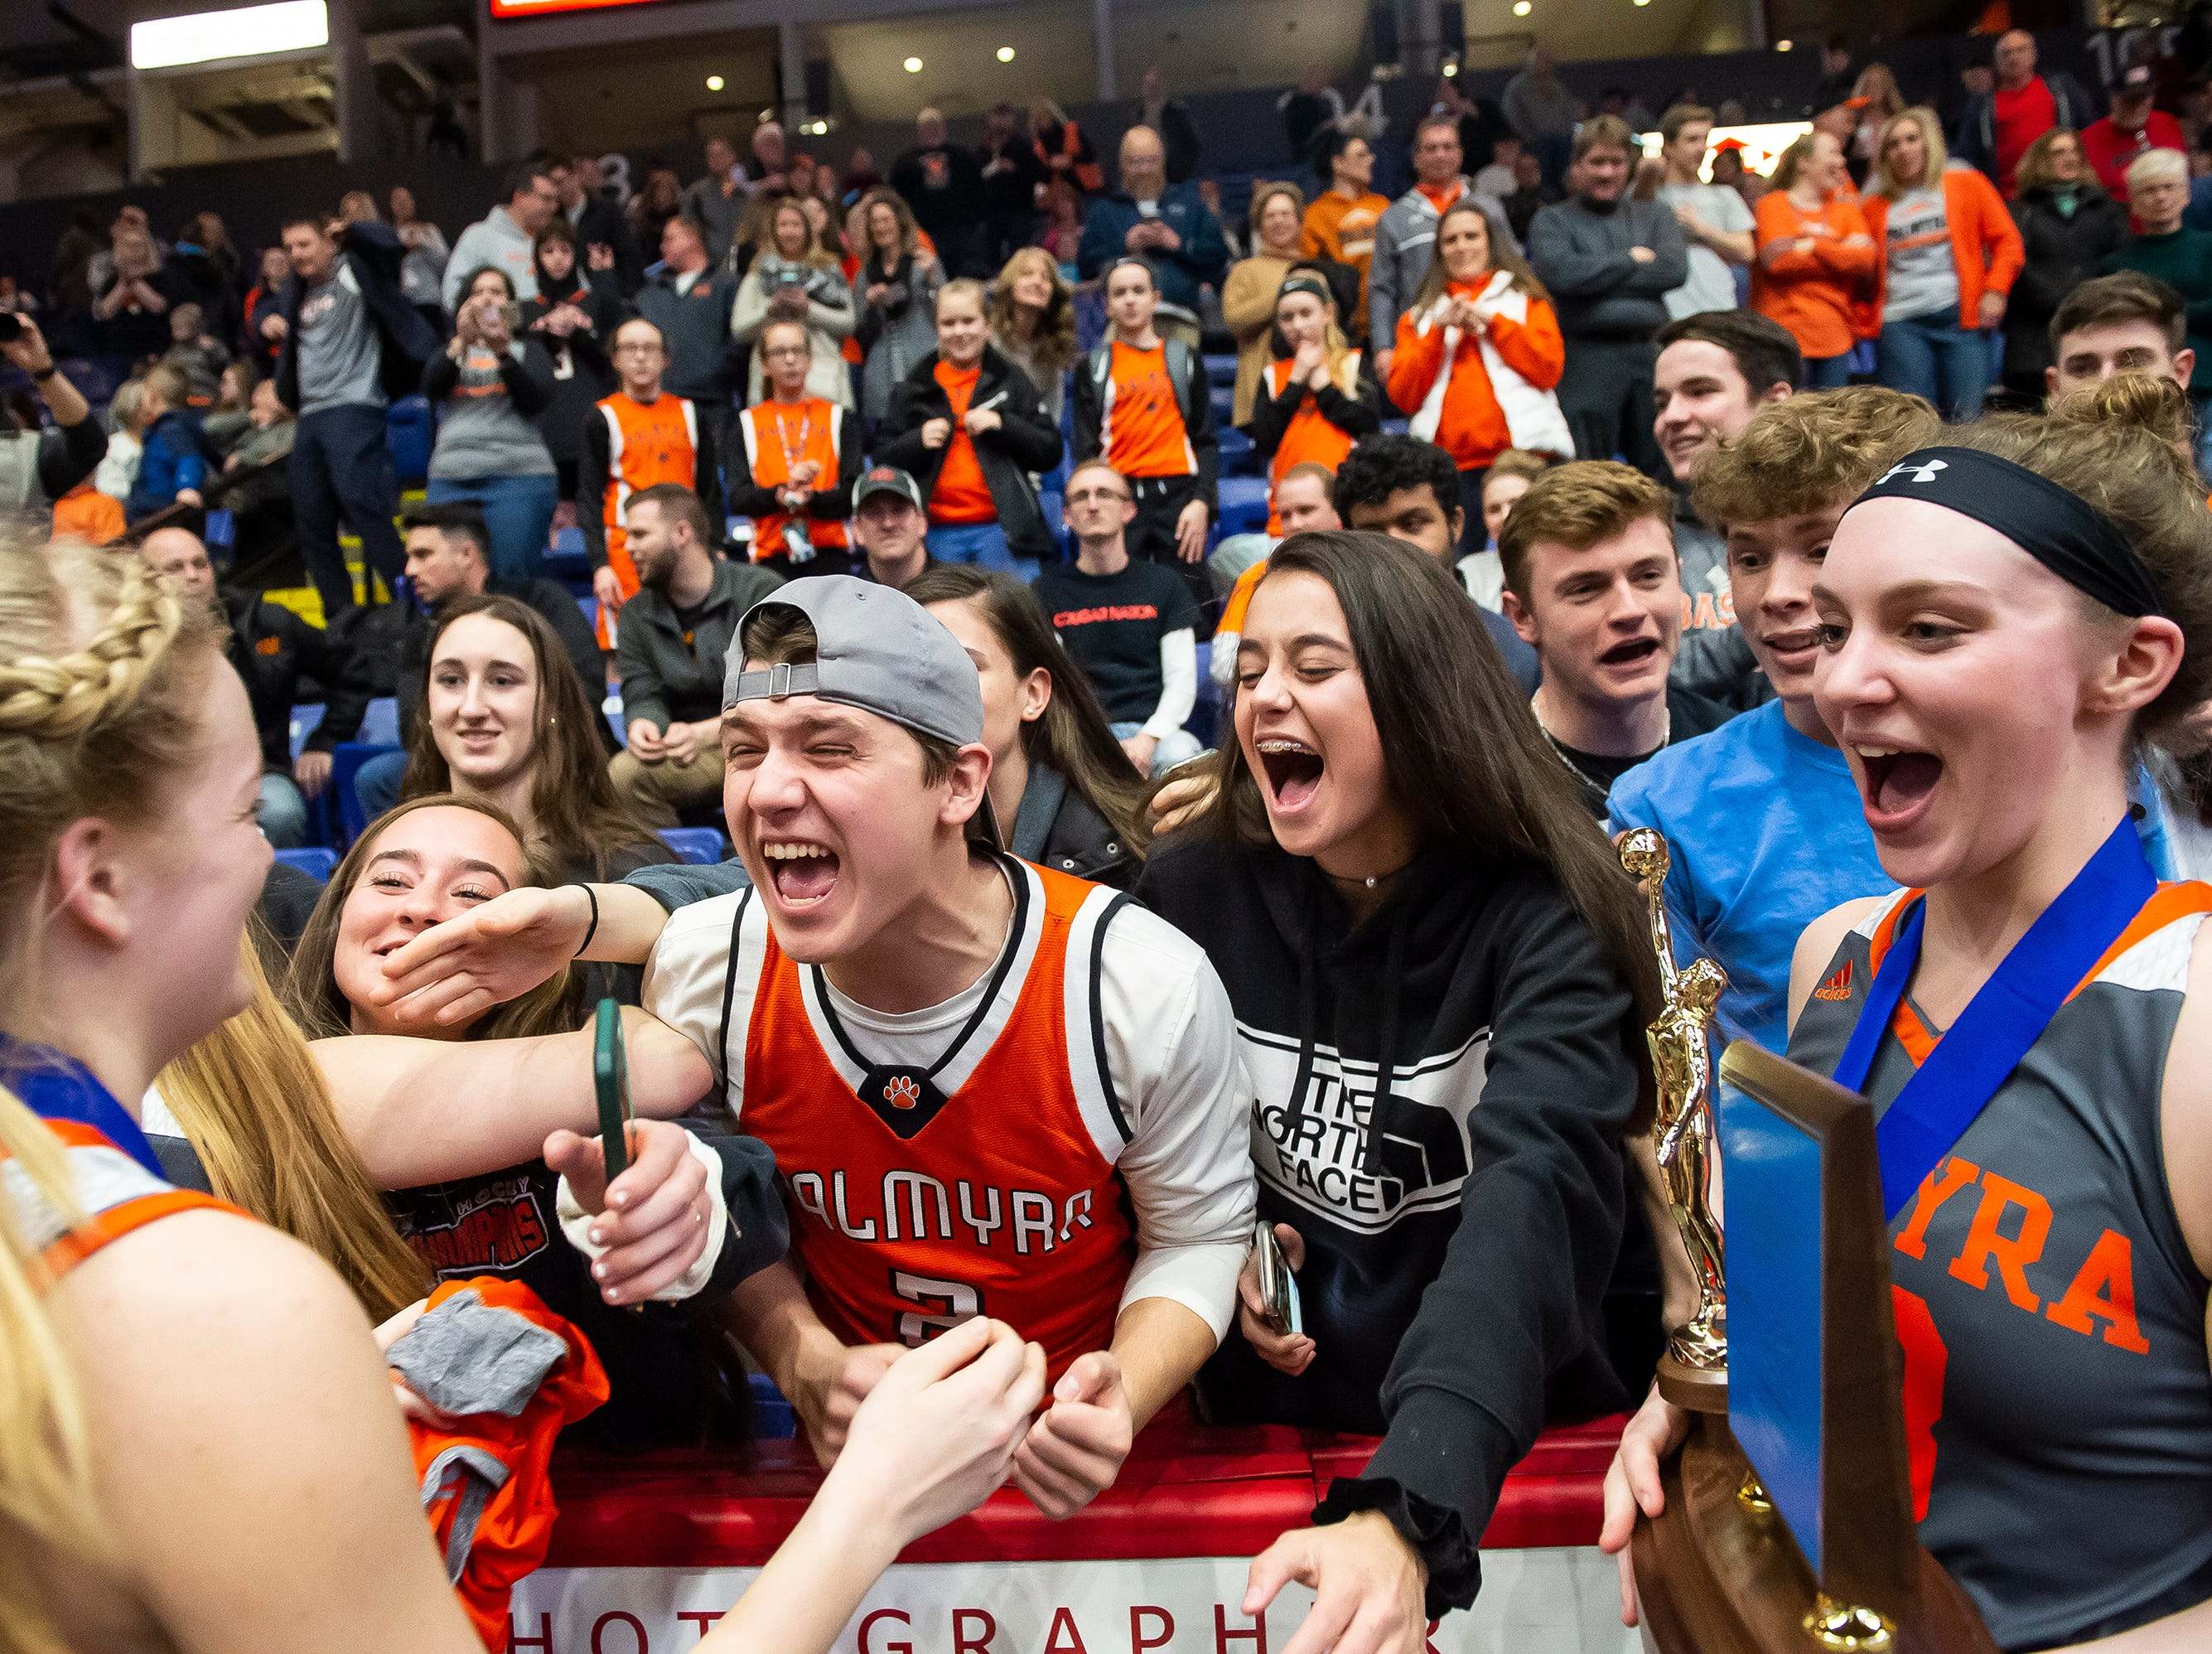 Palmyra players celebrate with the student section after defeating Gettysburg in the District 3 5A girls championship game at Santander Arena in Reading, Pa., Friday, March 1, 2019. The Cougars won 31-23.